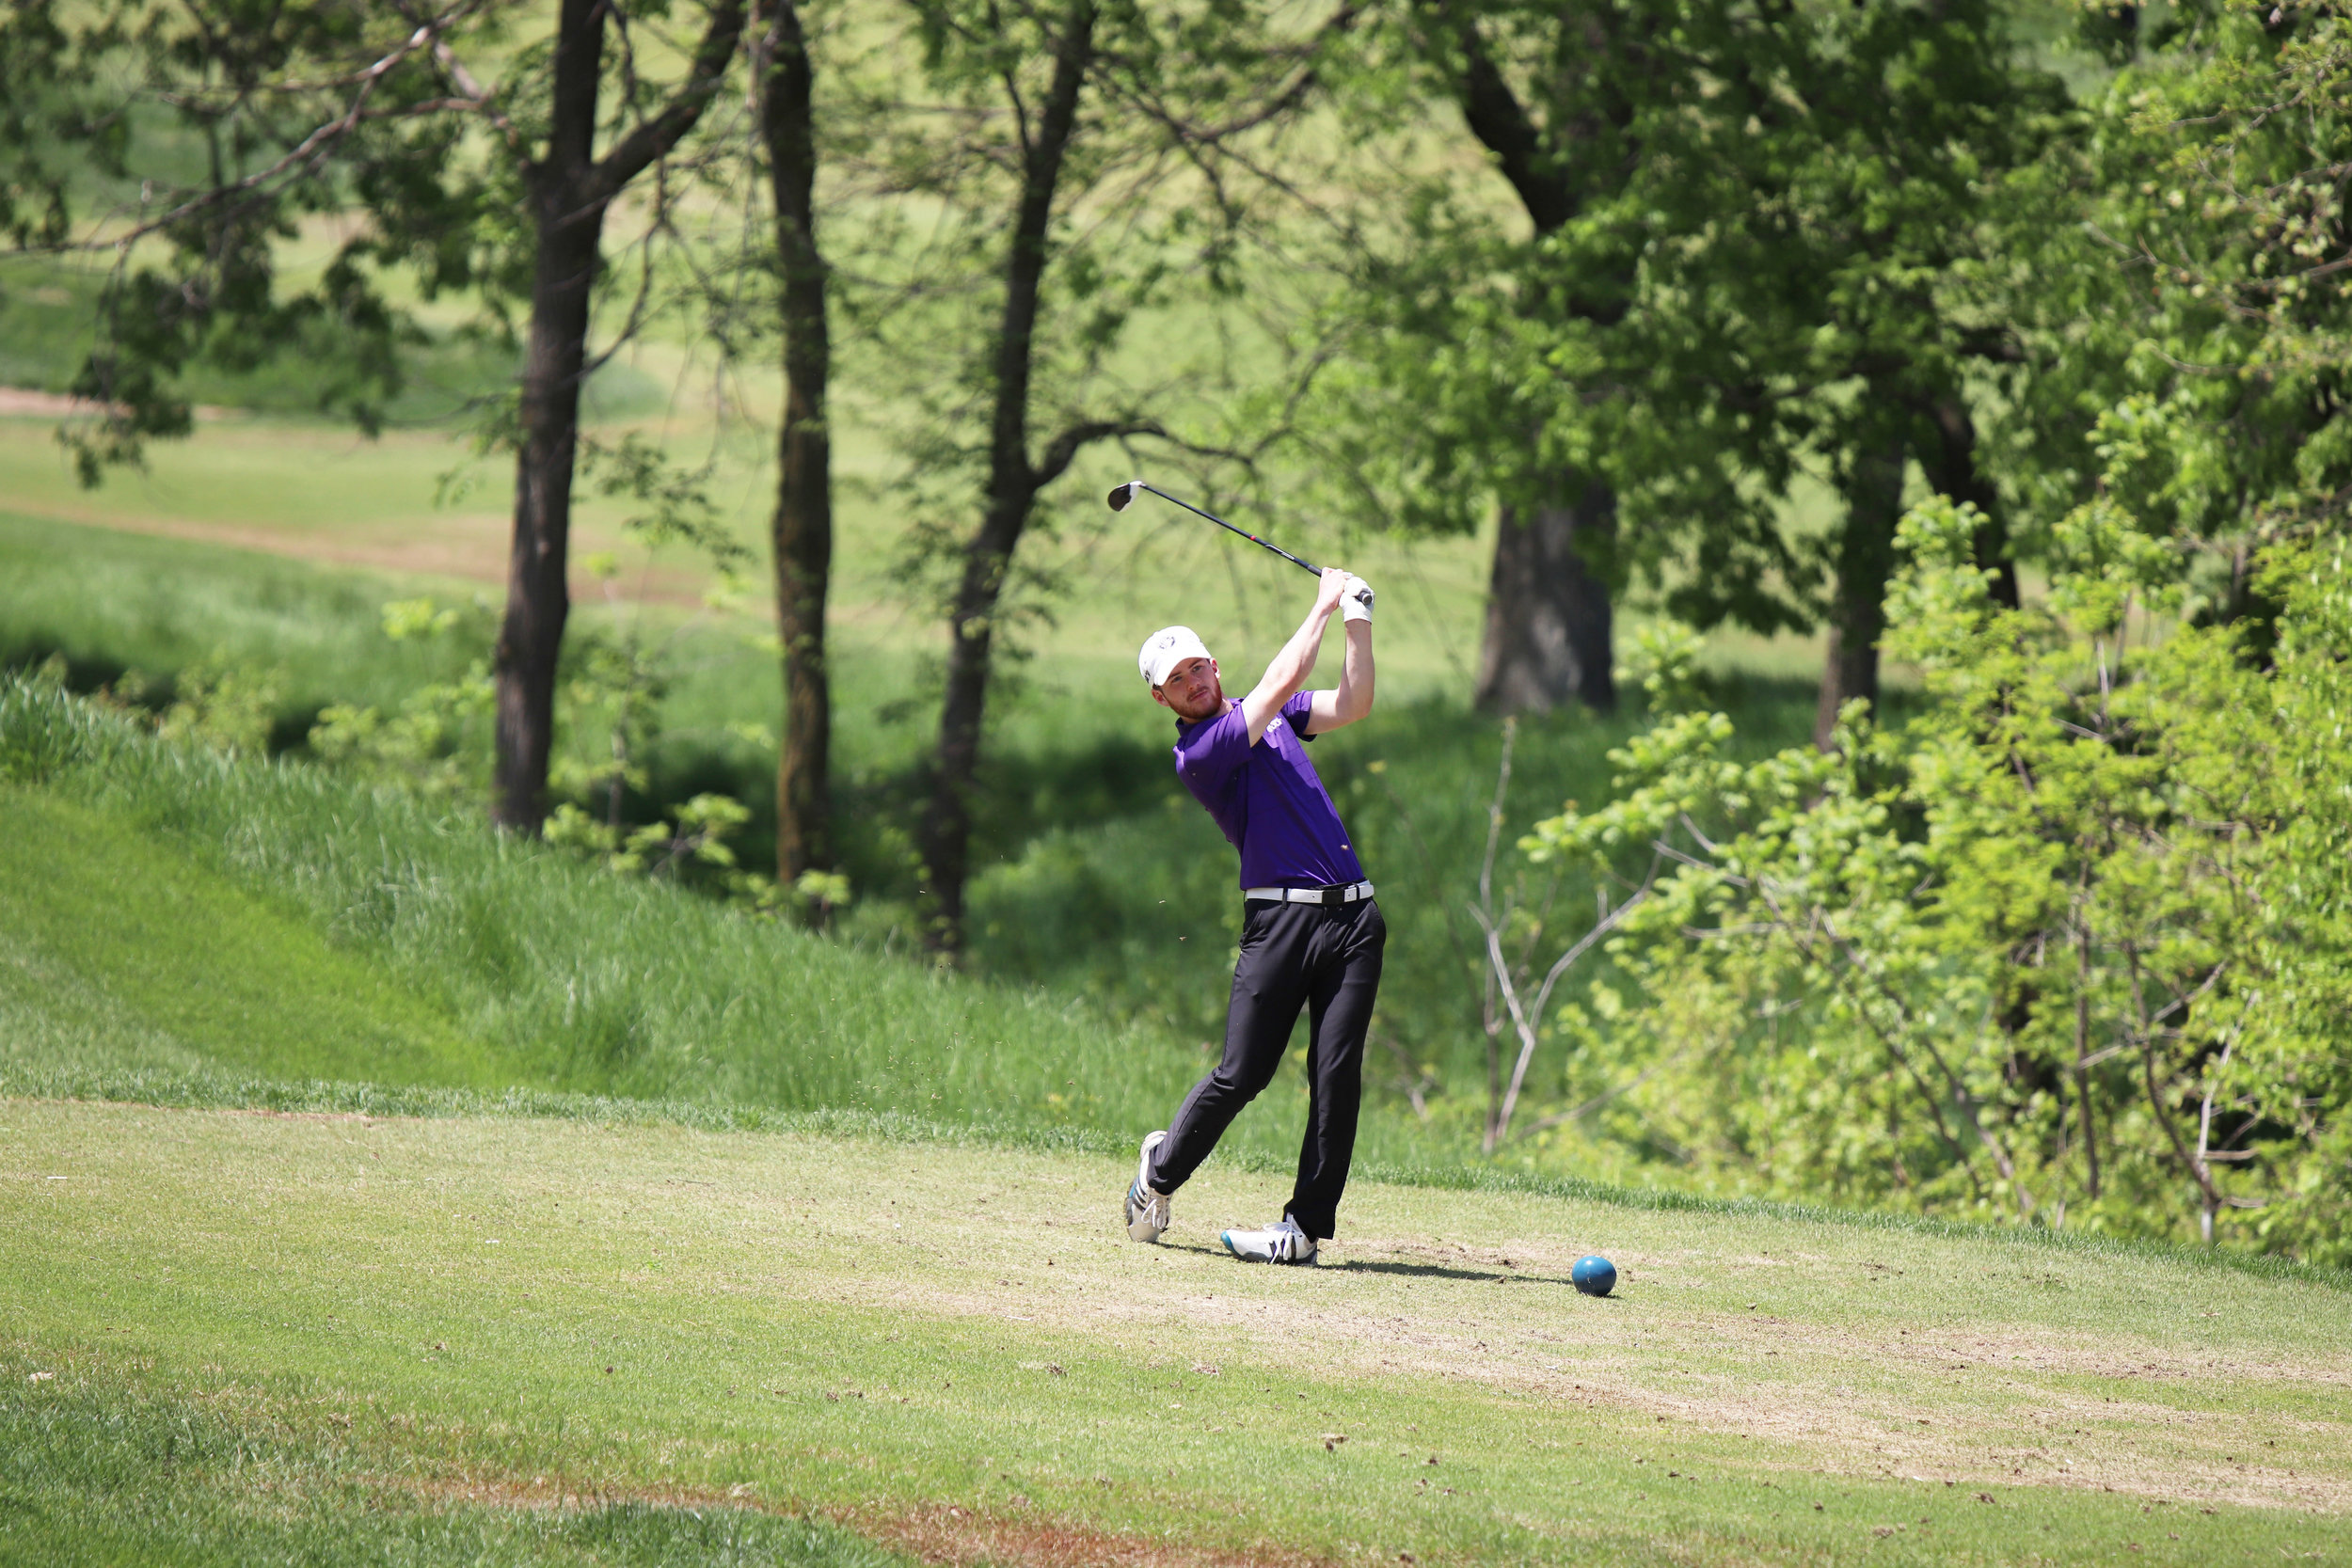 CODY THORN/Citizen photo  Park Hill South's Jay Threadgill tees off at the No. 12 hole at Tiffany Greens Golf Course during the Class 4 Sectional 4 meet held on Monday, May 6 in Kansas City.